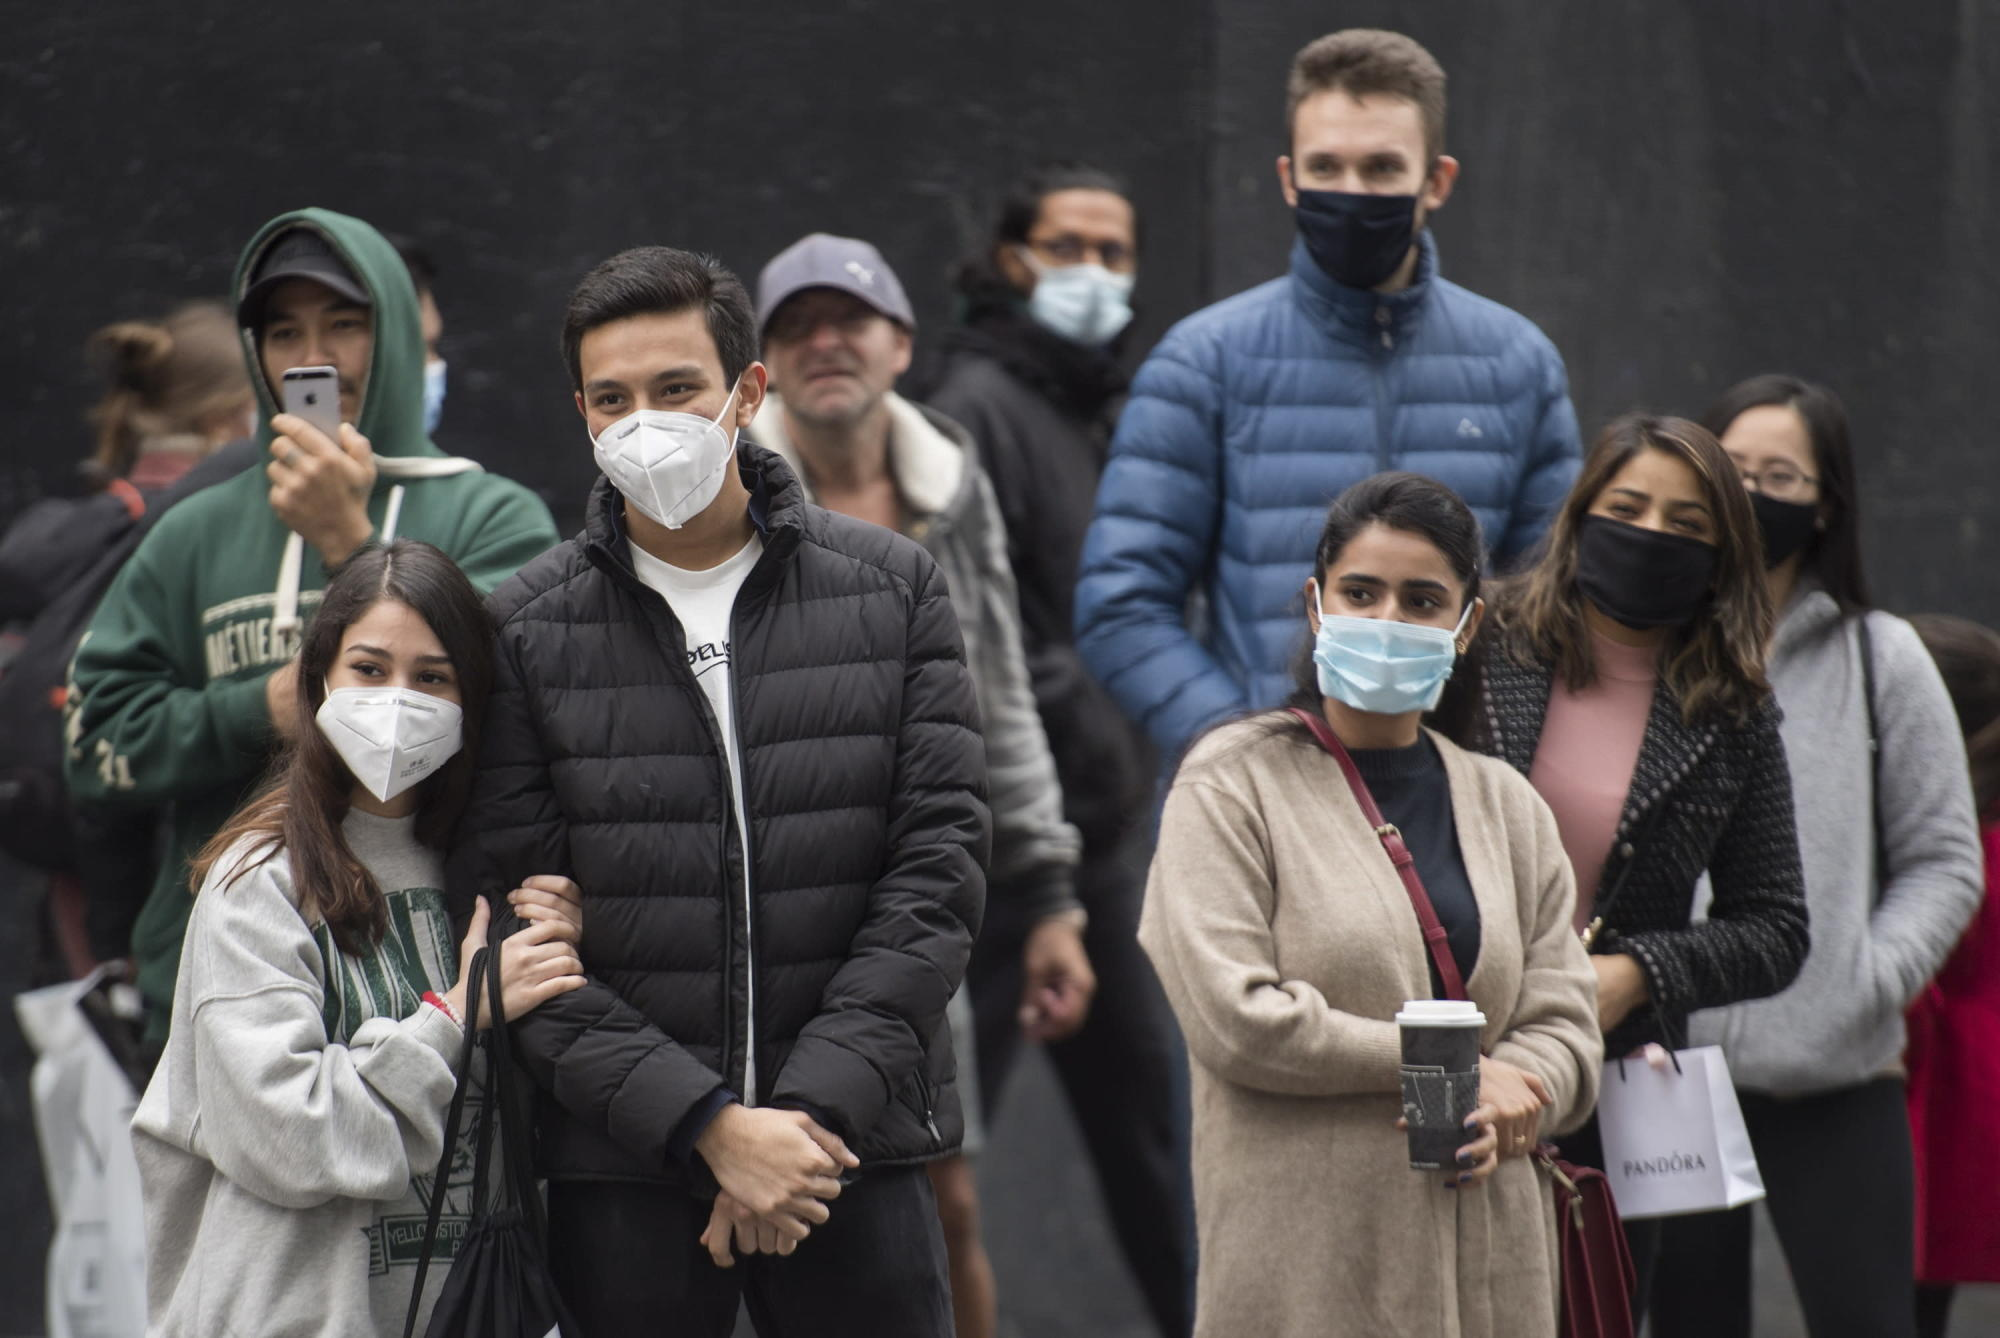 Canada's top doctor says pandemic 'exposed' societal inequalities; Ontario to reveal new modelling data on Thursday [Video]